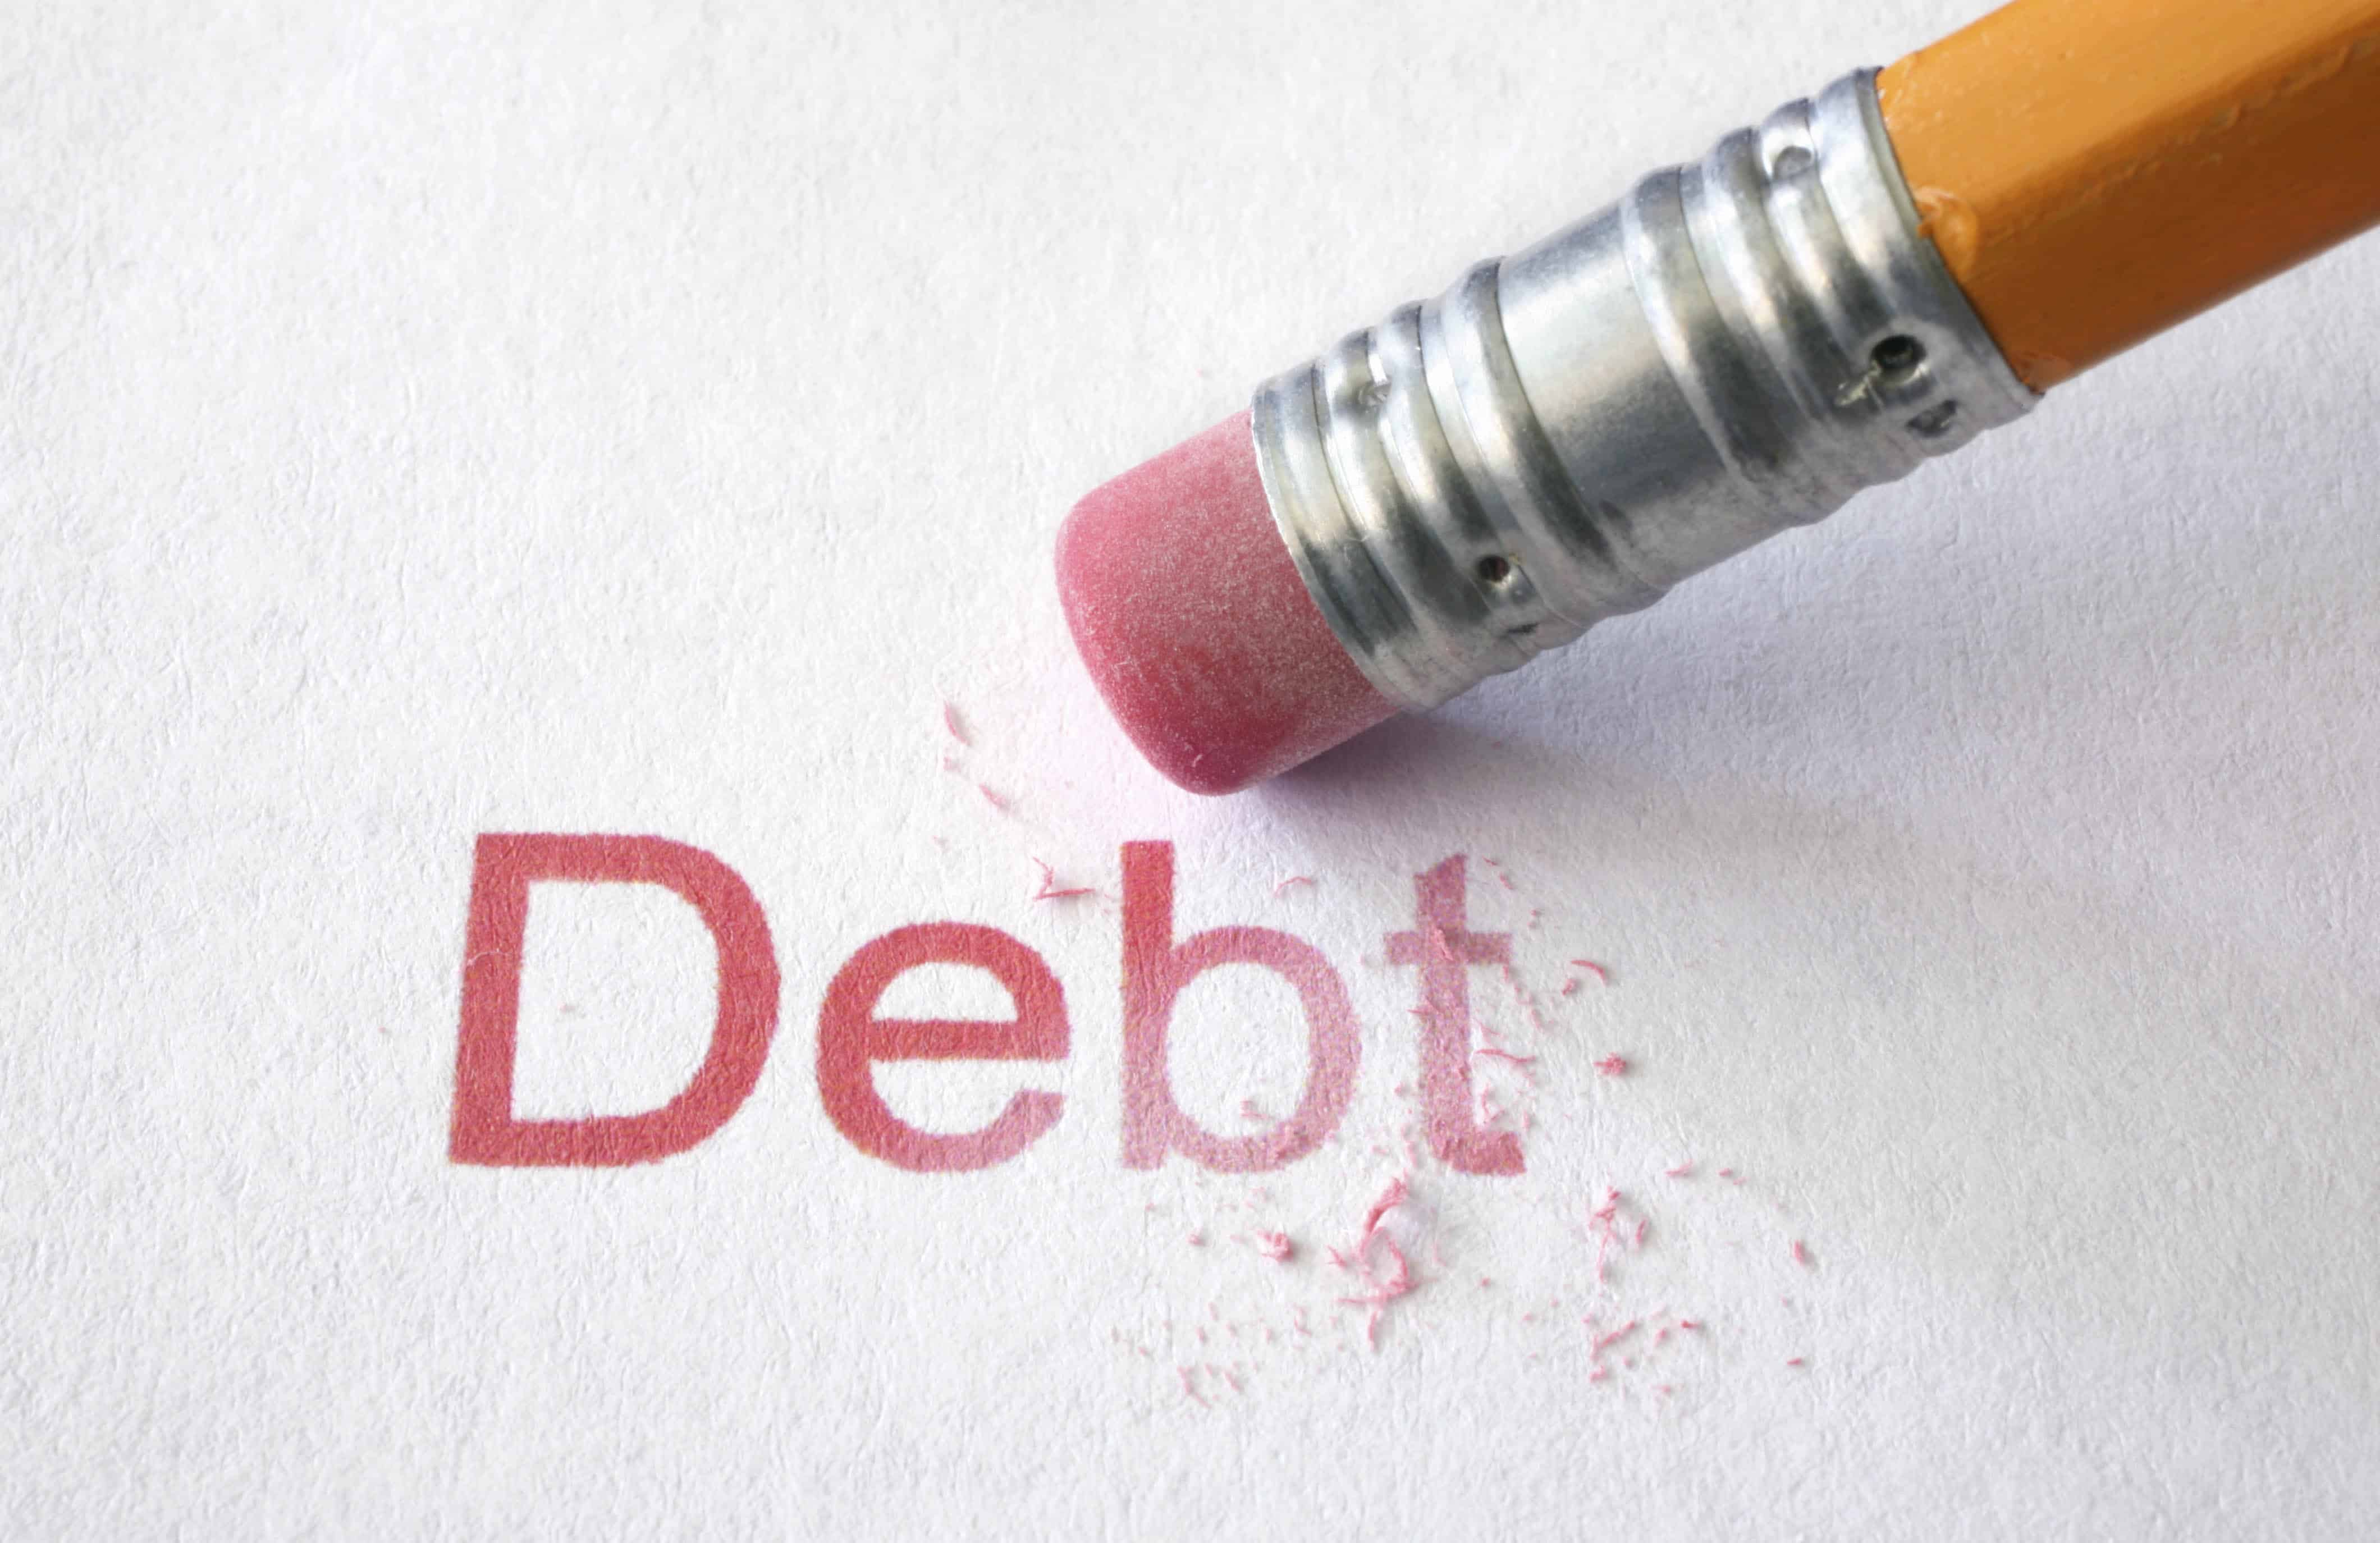 Pay for delete can, in theory, erase debt from your credit file